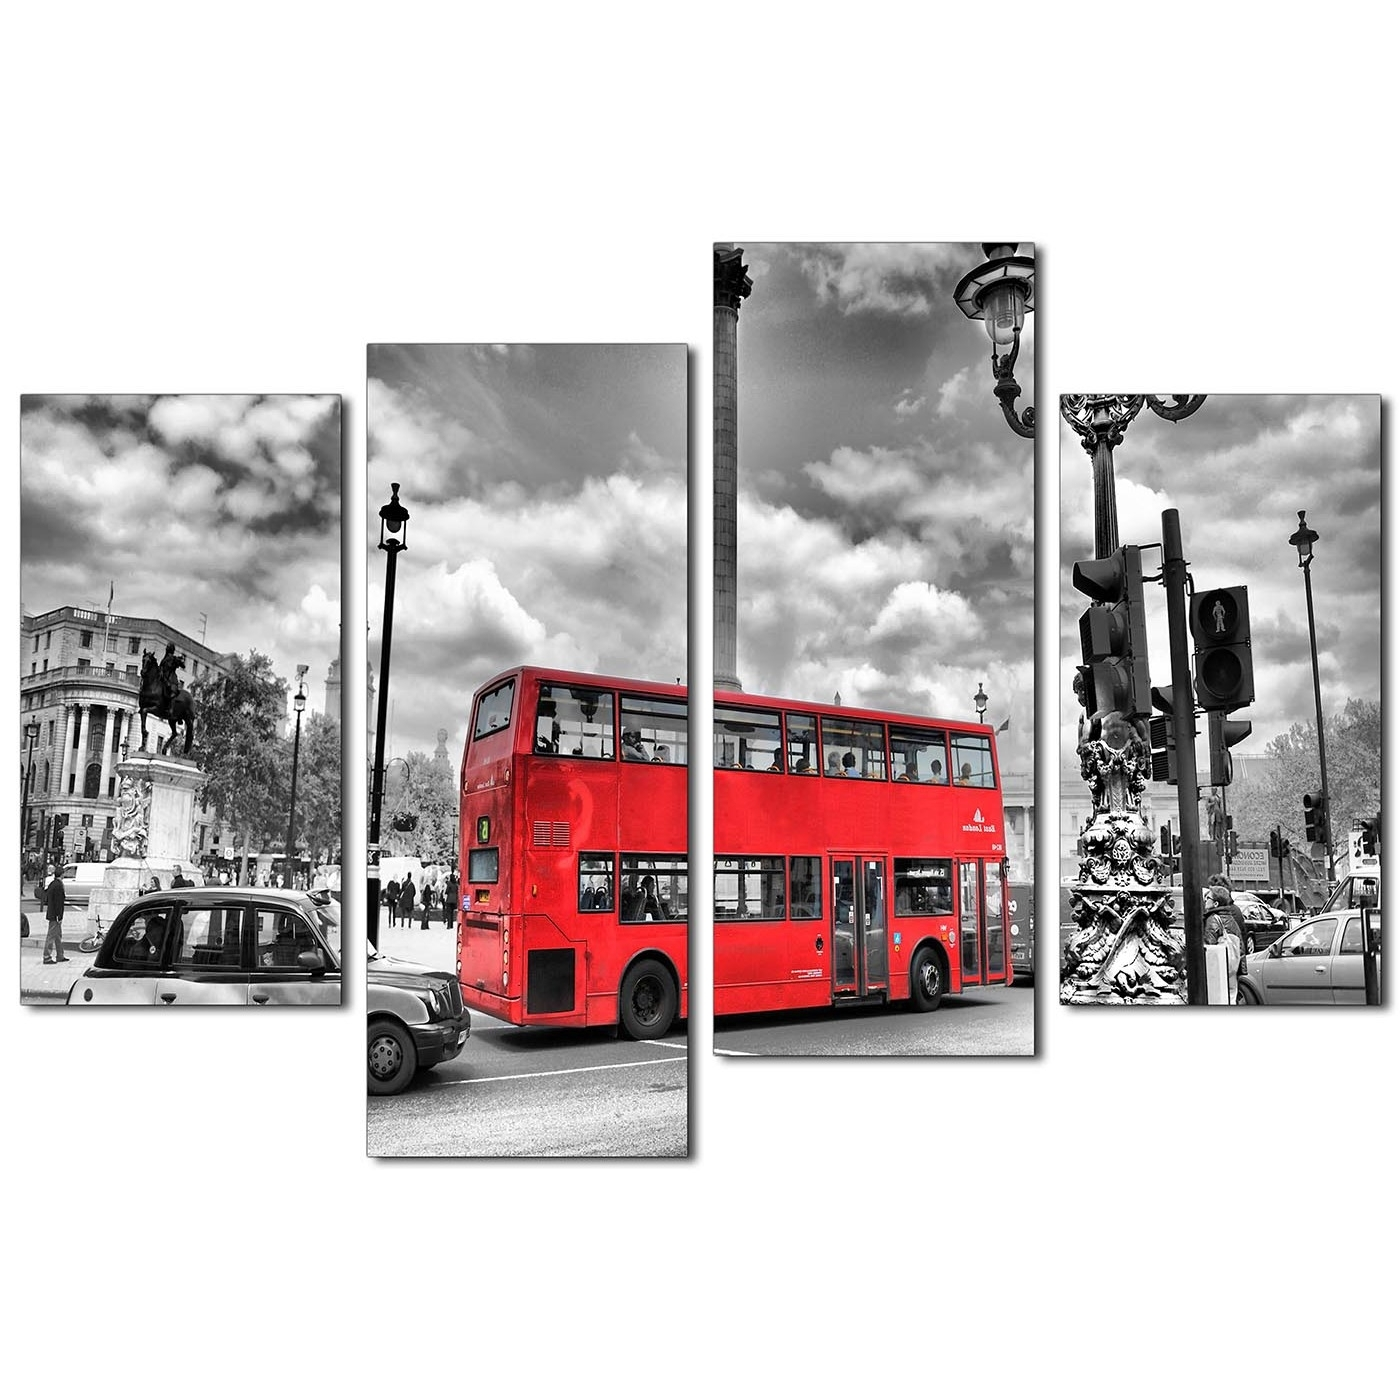 London Canvas Wall Art Intended For Well Known City London Canvas Prints Of Red Bus In Black & White For Living Room (View 14 of 15)